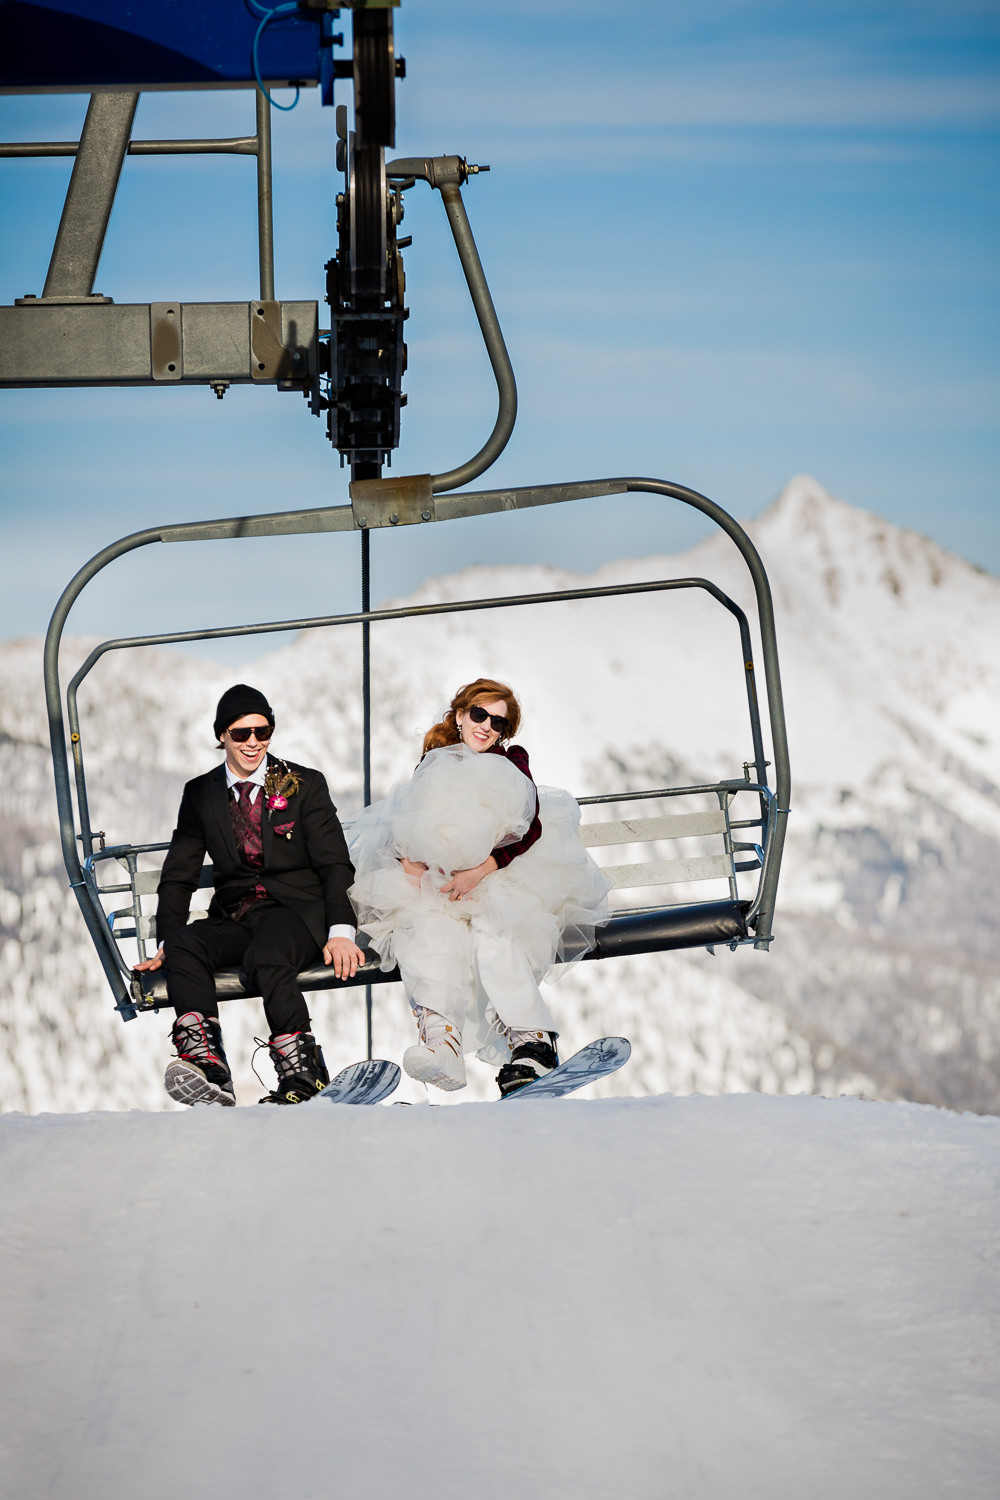 big-sky-montana-wedding-big-sky-resort-bride-groom-unload-lift.jpg